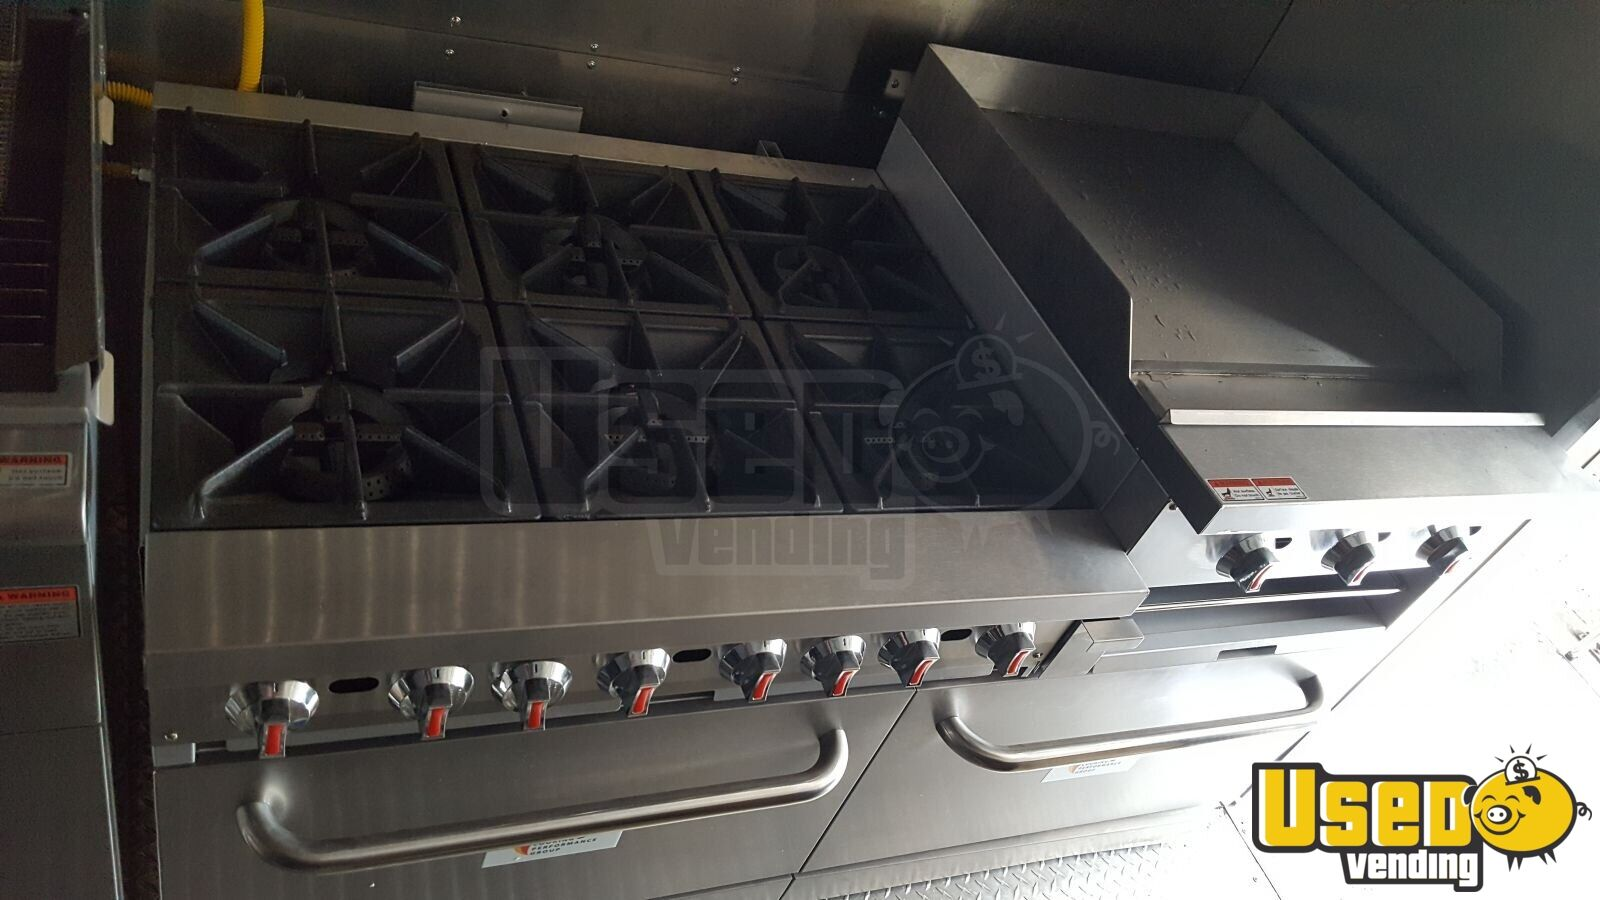 1979 Chevy P 30 All-purpose Food Truck Cabinets Michigan Diesel Engine for Sale - 4